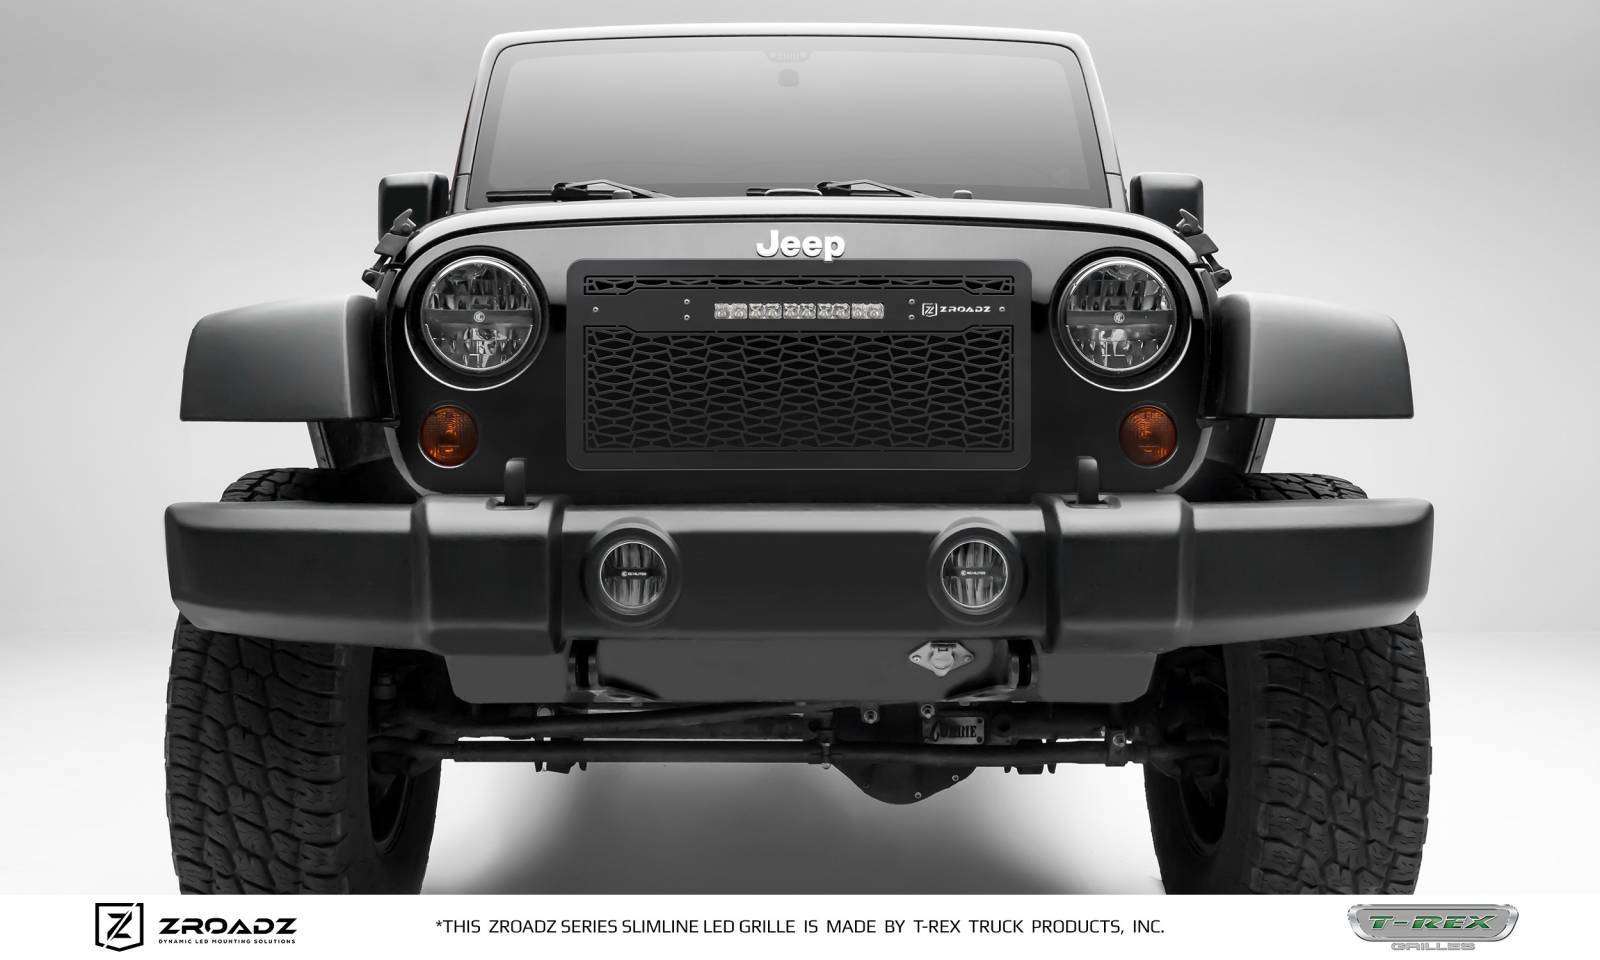 Jeep Wrangler - ZROADZ Series - Main Insert - Grille w/ One 10 Inch Slim Line Single Row - LED Light Bar - Includes Universal Wiring Harness - Part# Z314831-10C